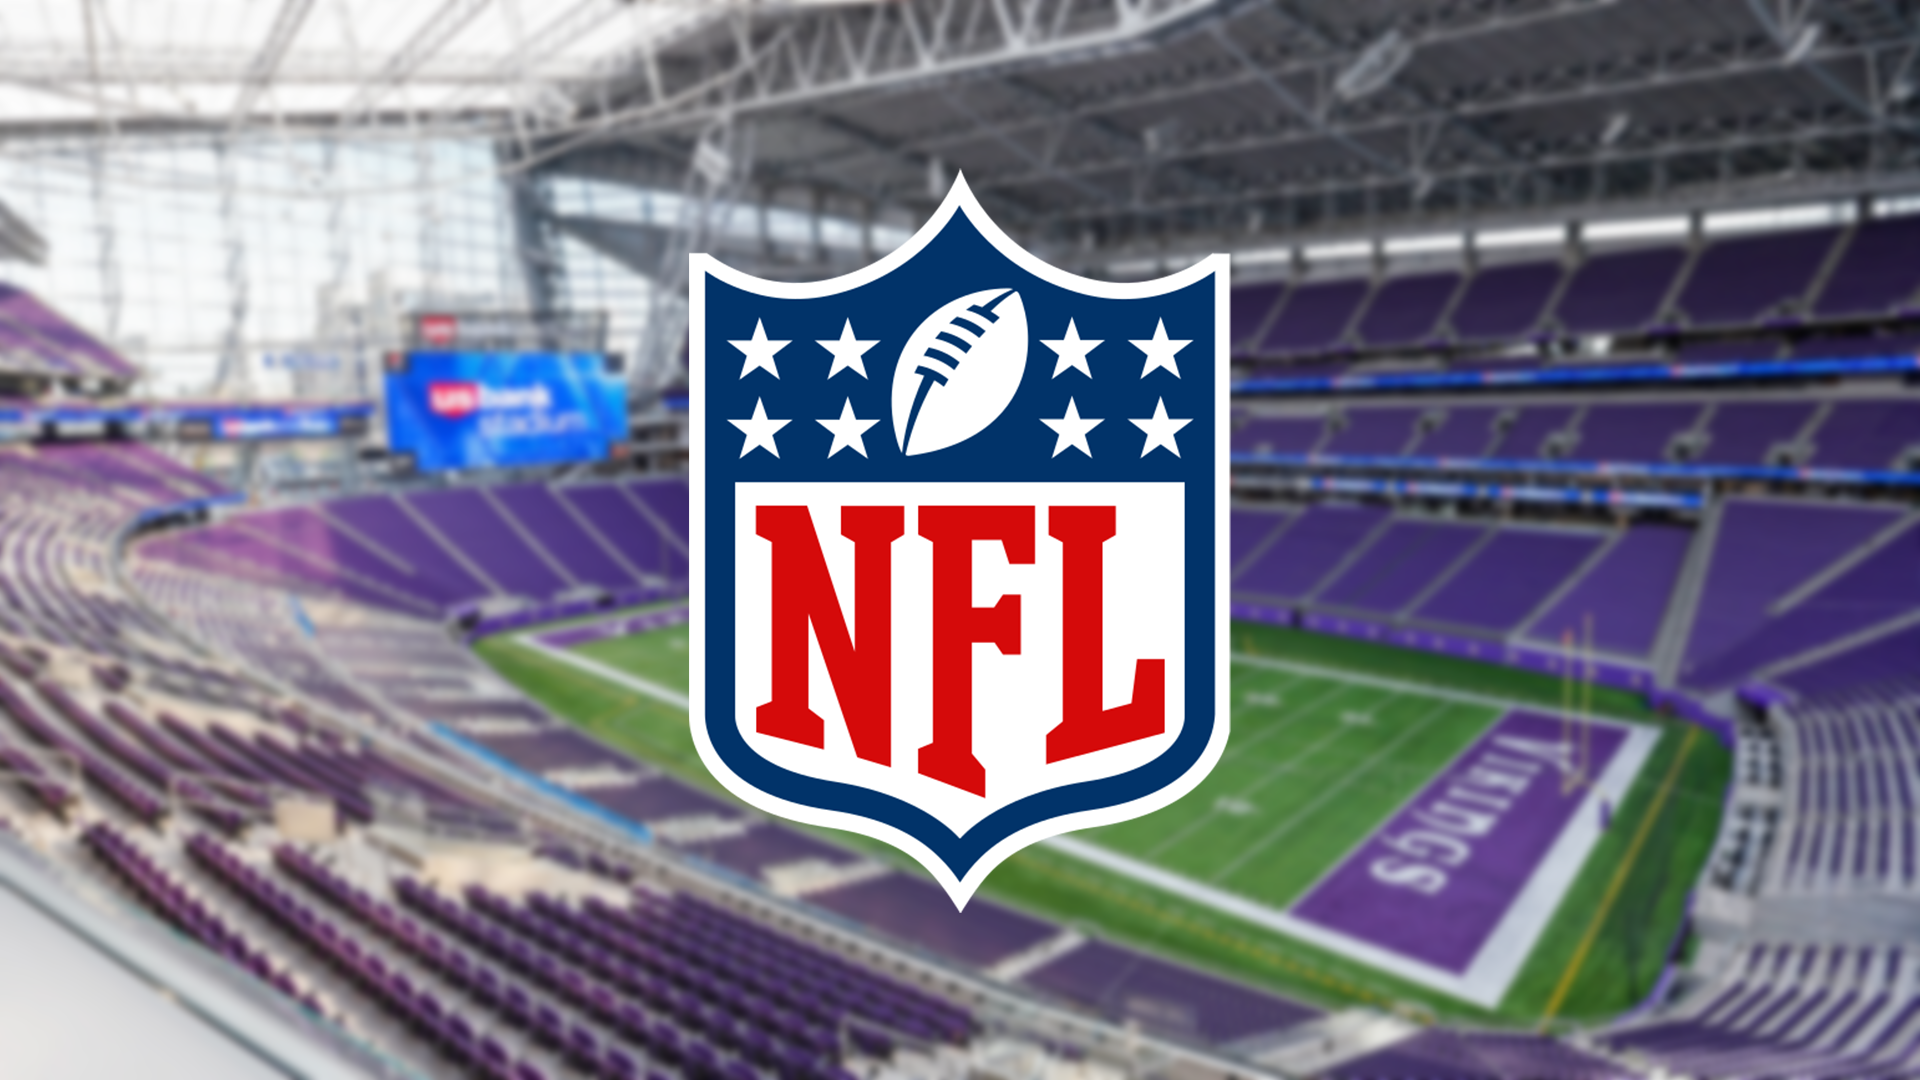 How to stream live NFL football games in 2019